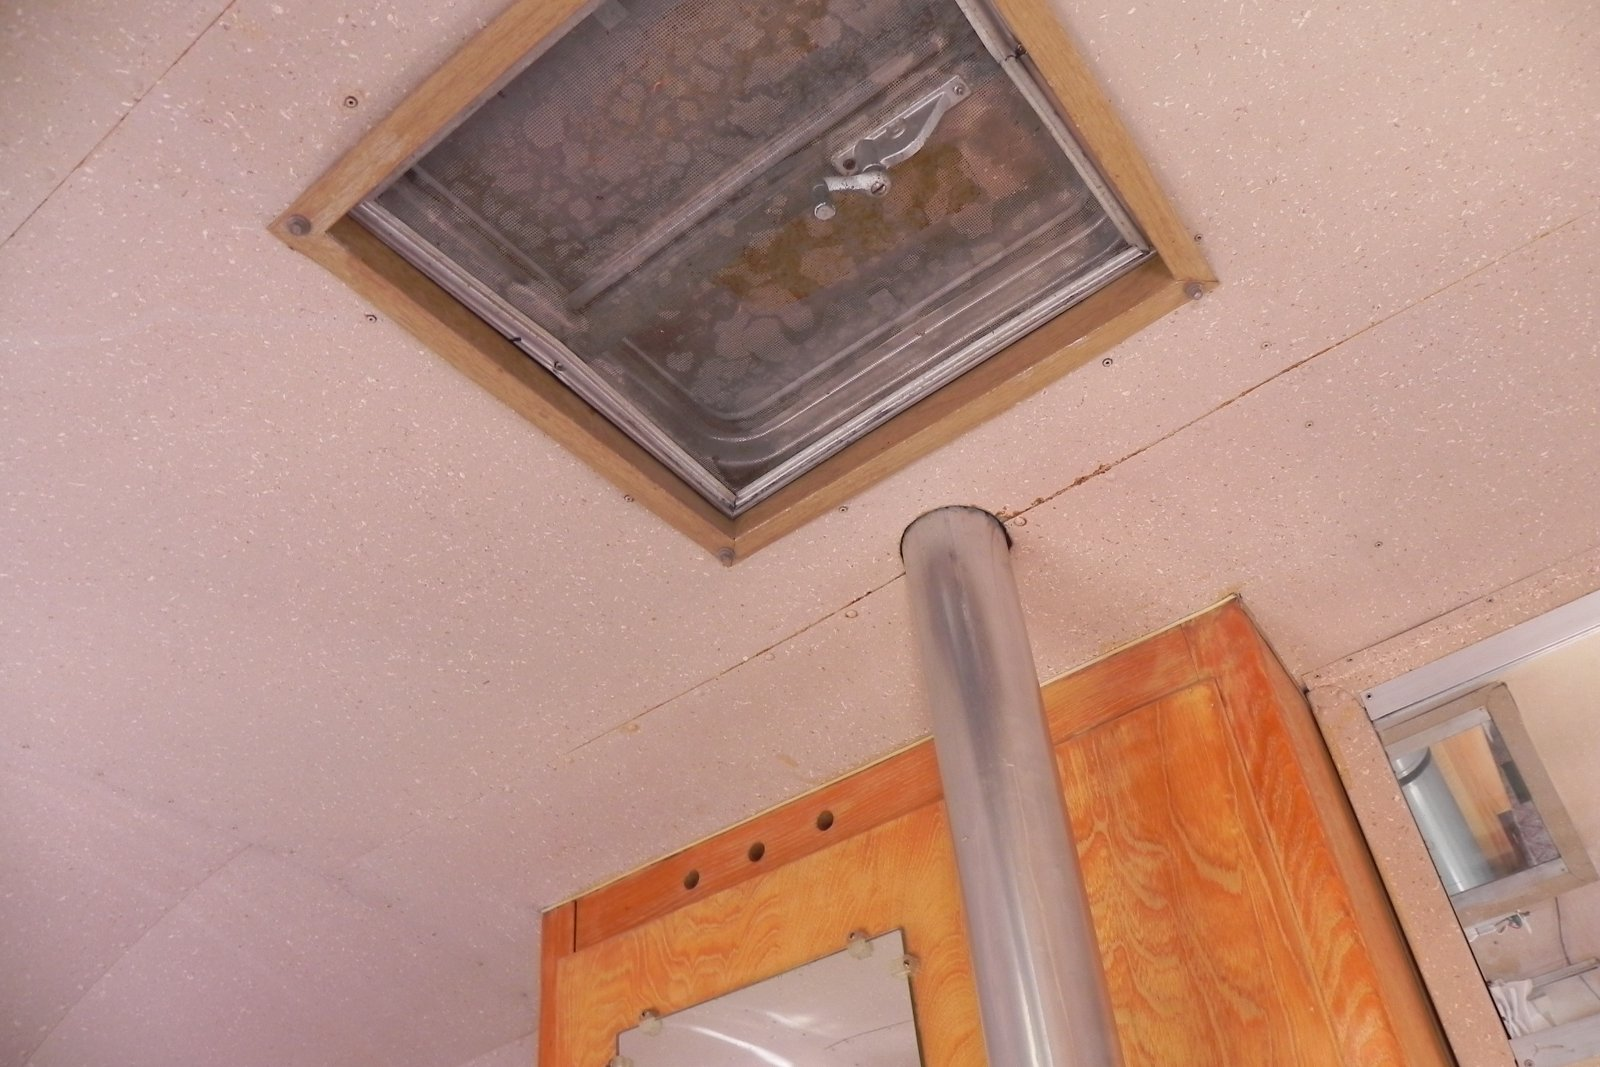 Click image for larger version  Name:ceiling vent and furnace chimney.jpg Views:147 Size:251.9 KB ID:172960